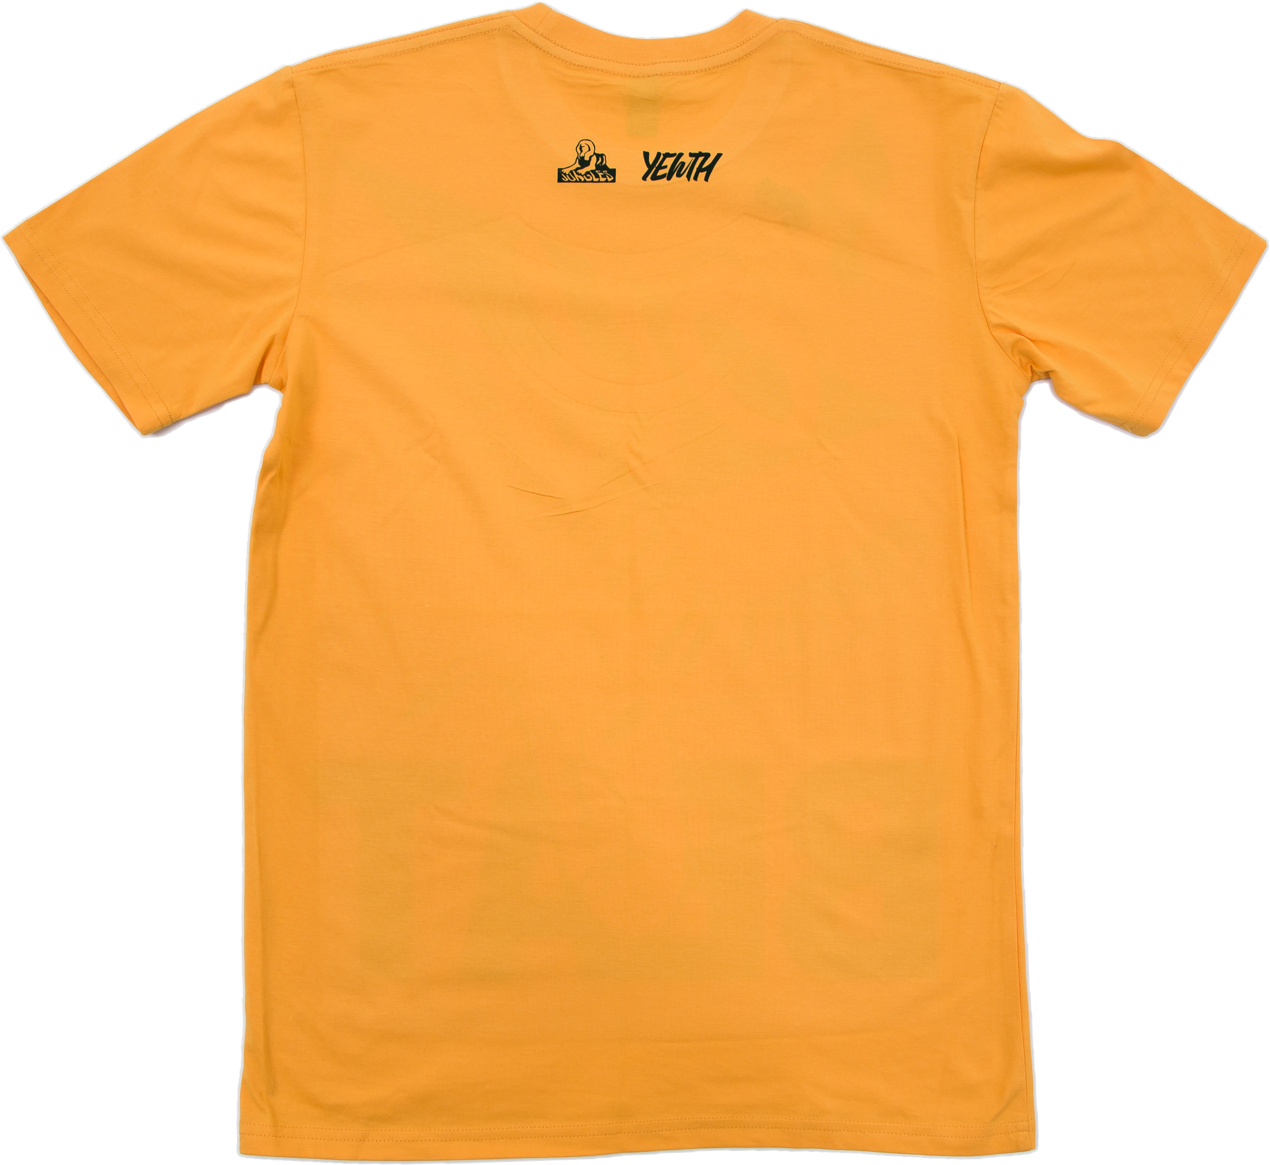 3rd bday tees dugong yewth jungles (14 of 15).png